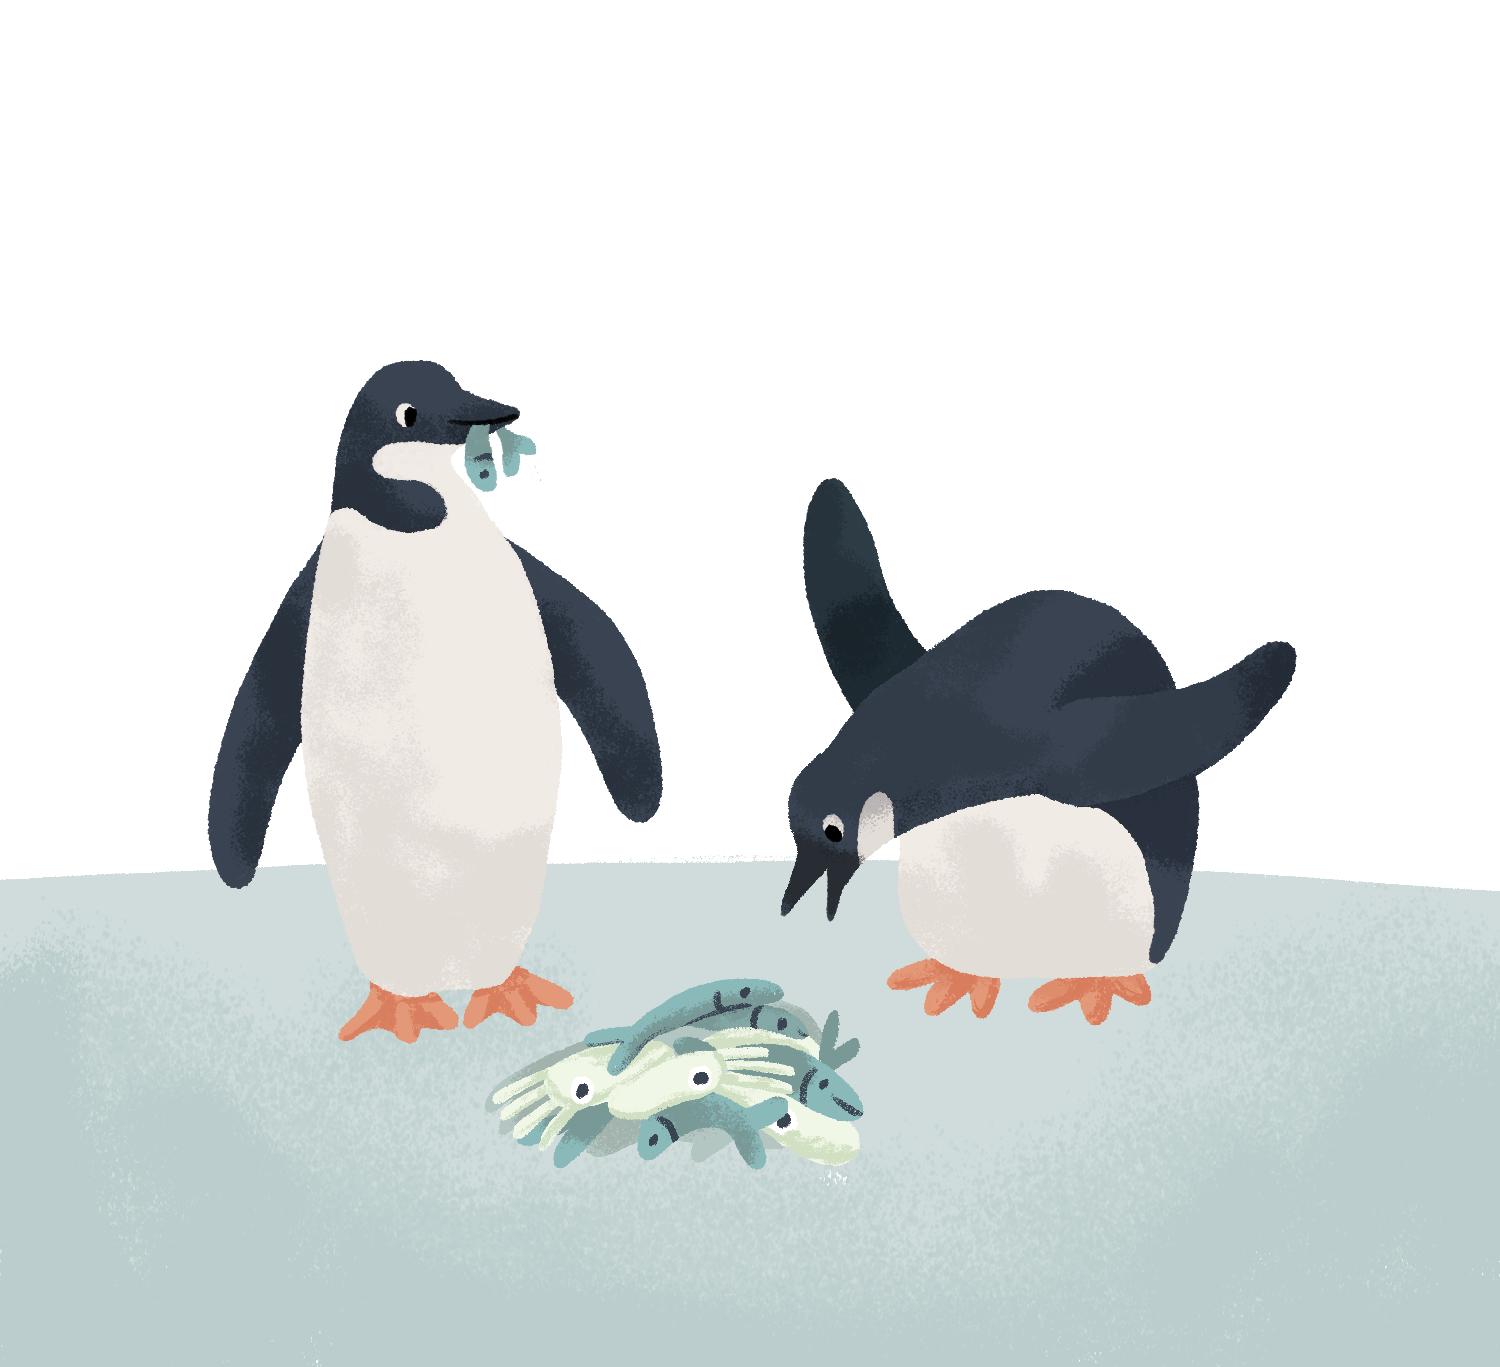 penguins_eating.png